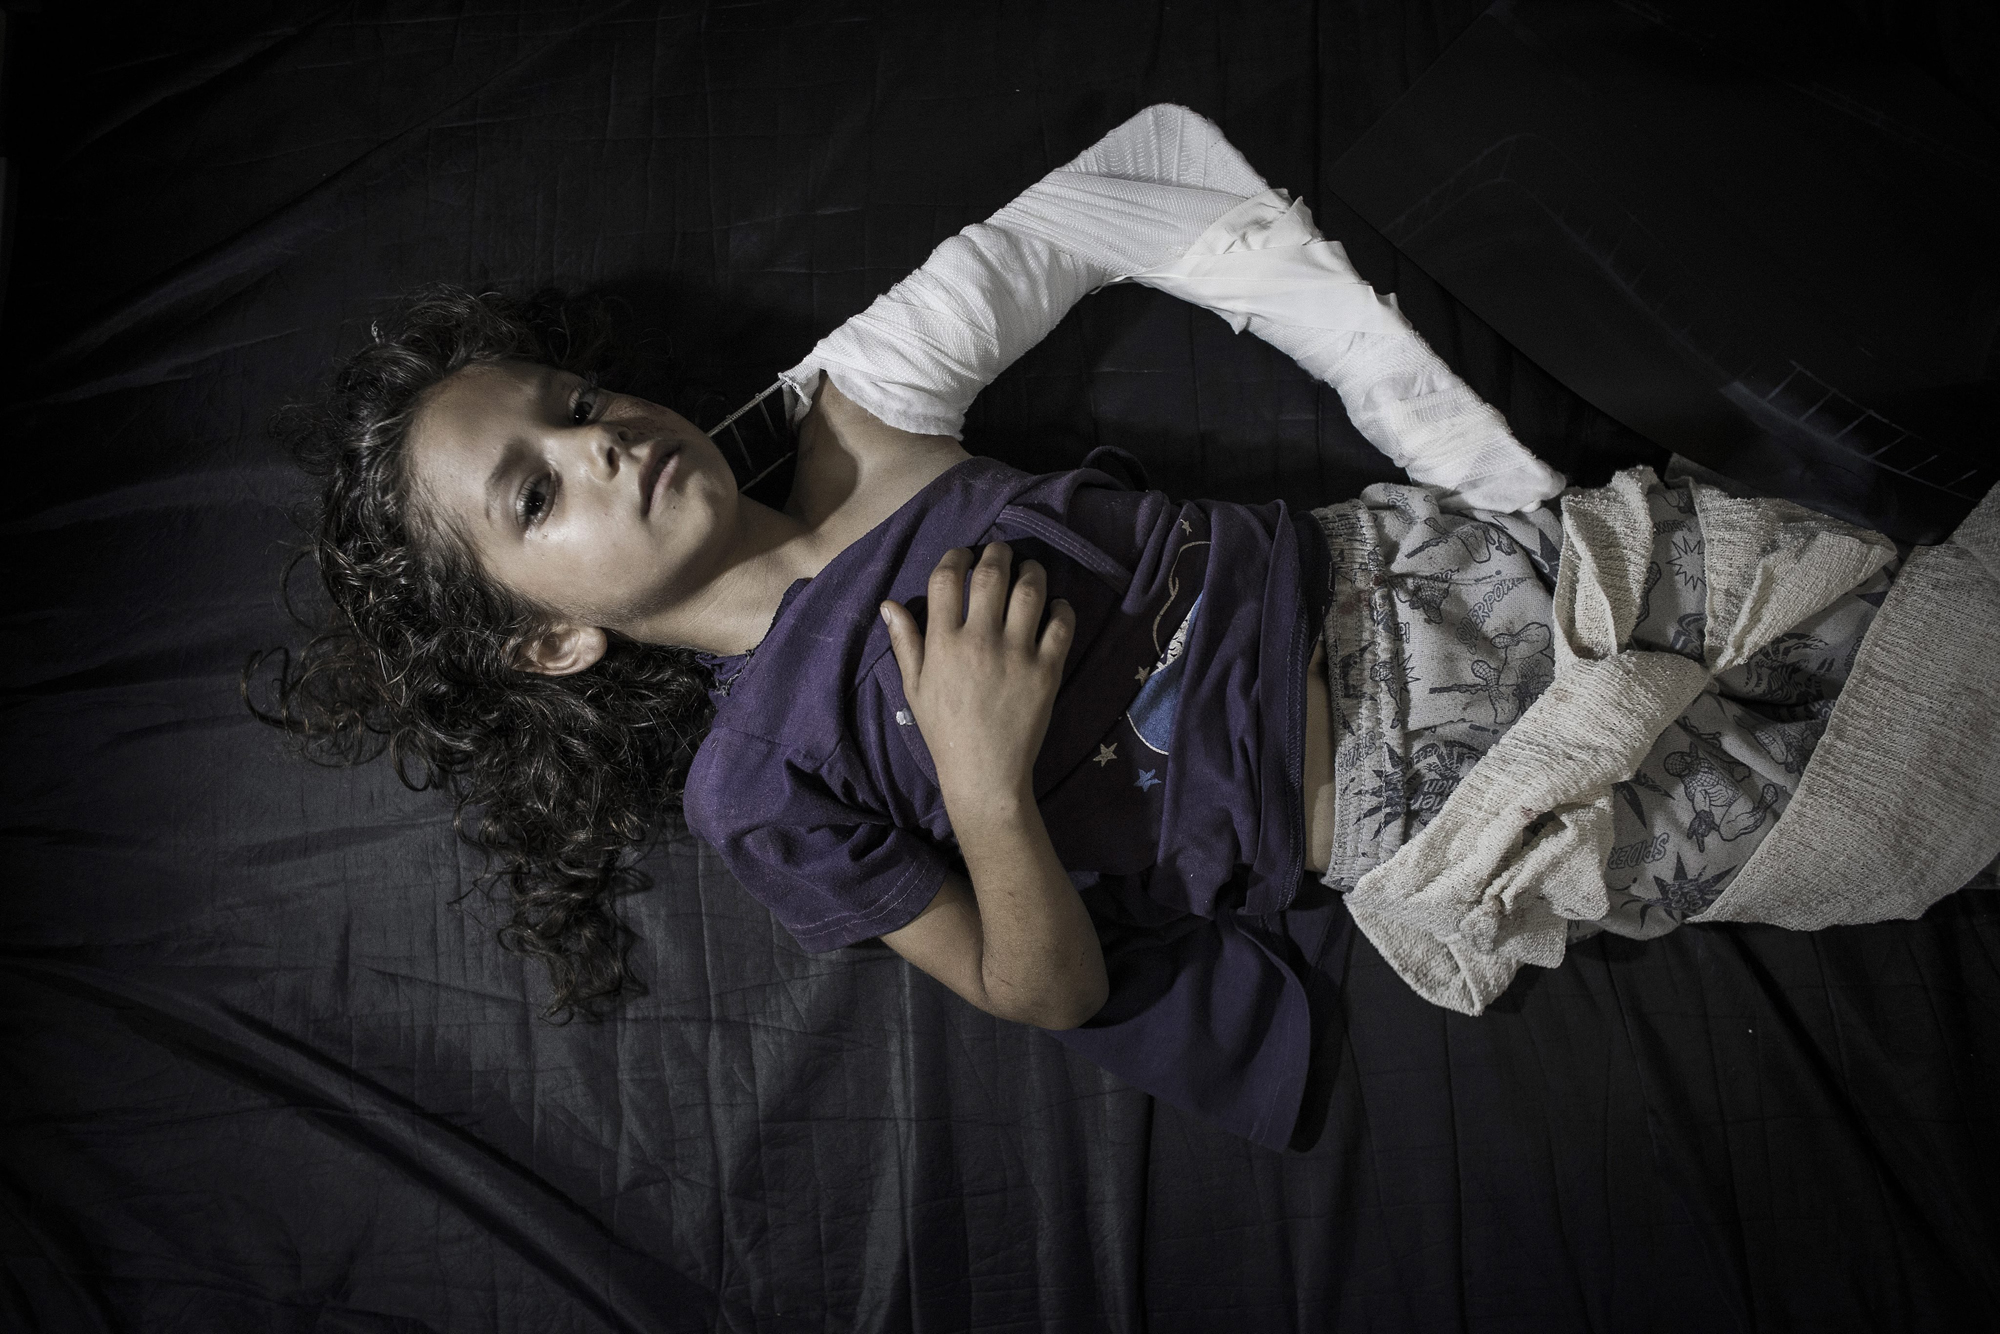 A young Palestinian girl who got injured when a UN school for refugees was allegedly hit by a Israeli tank shells, lies on a hospital bed in the emergency room of Kamal Adwan hospital in Beit Lahiya, Gaza Strip, July 24, 2014.